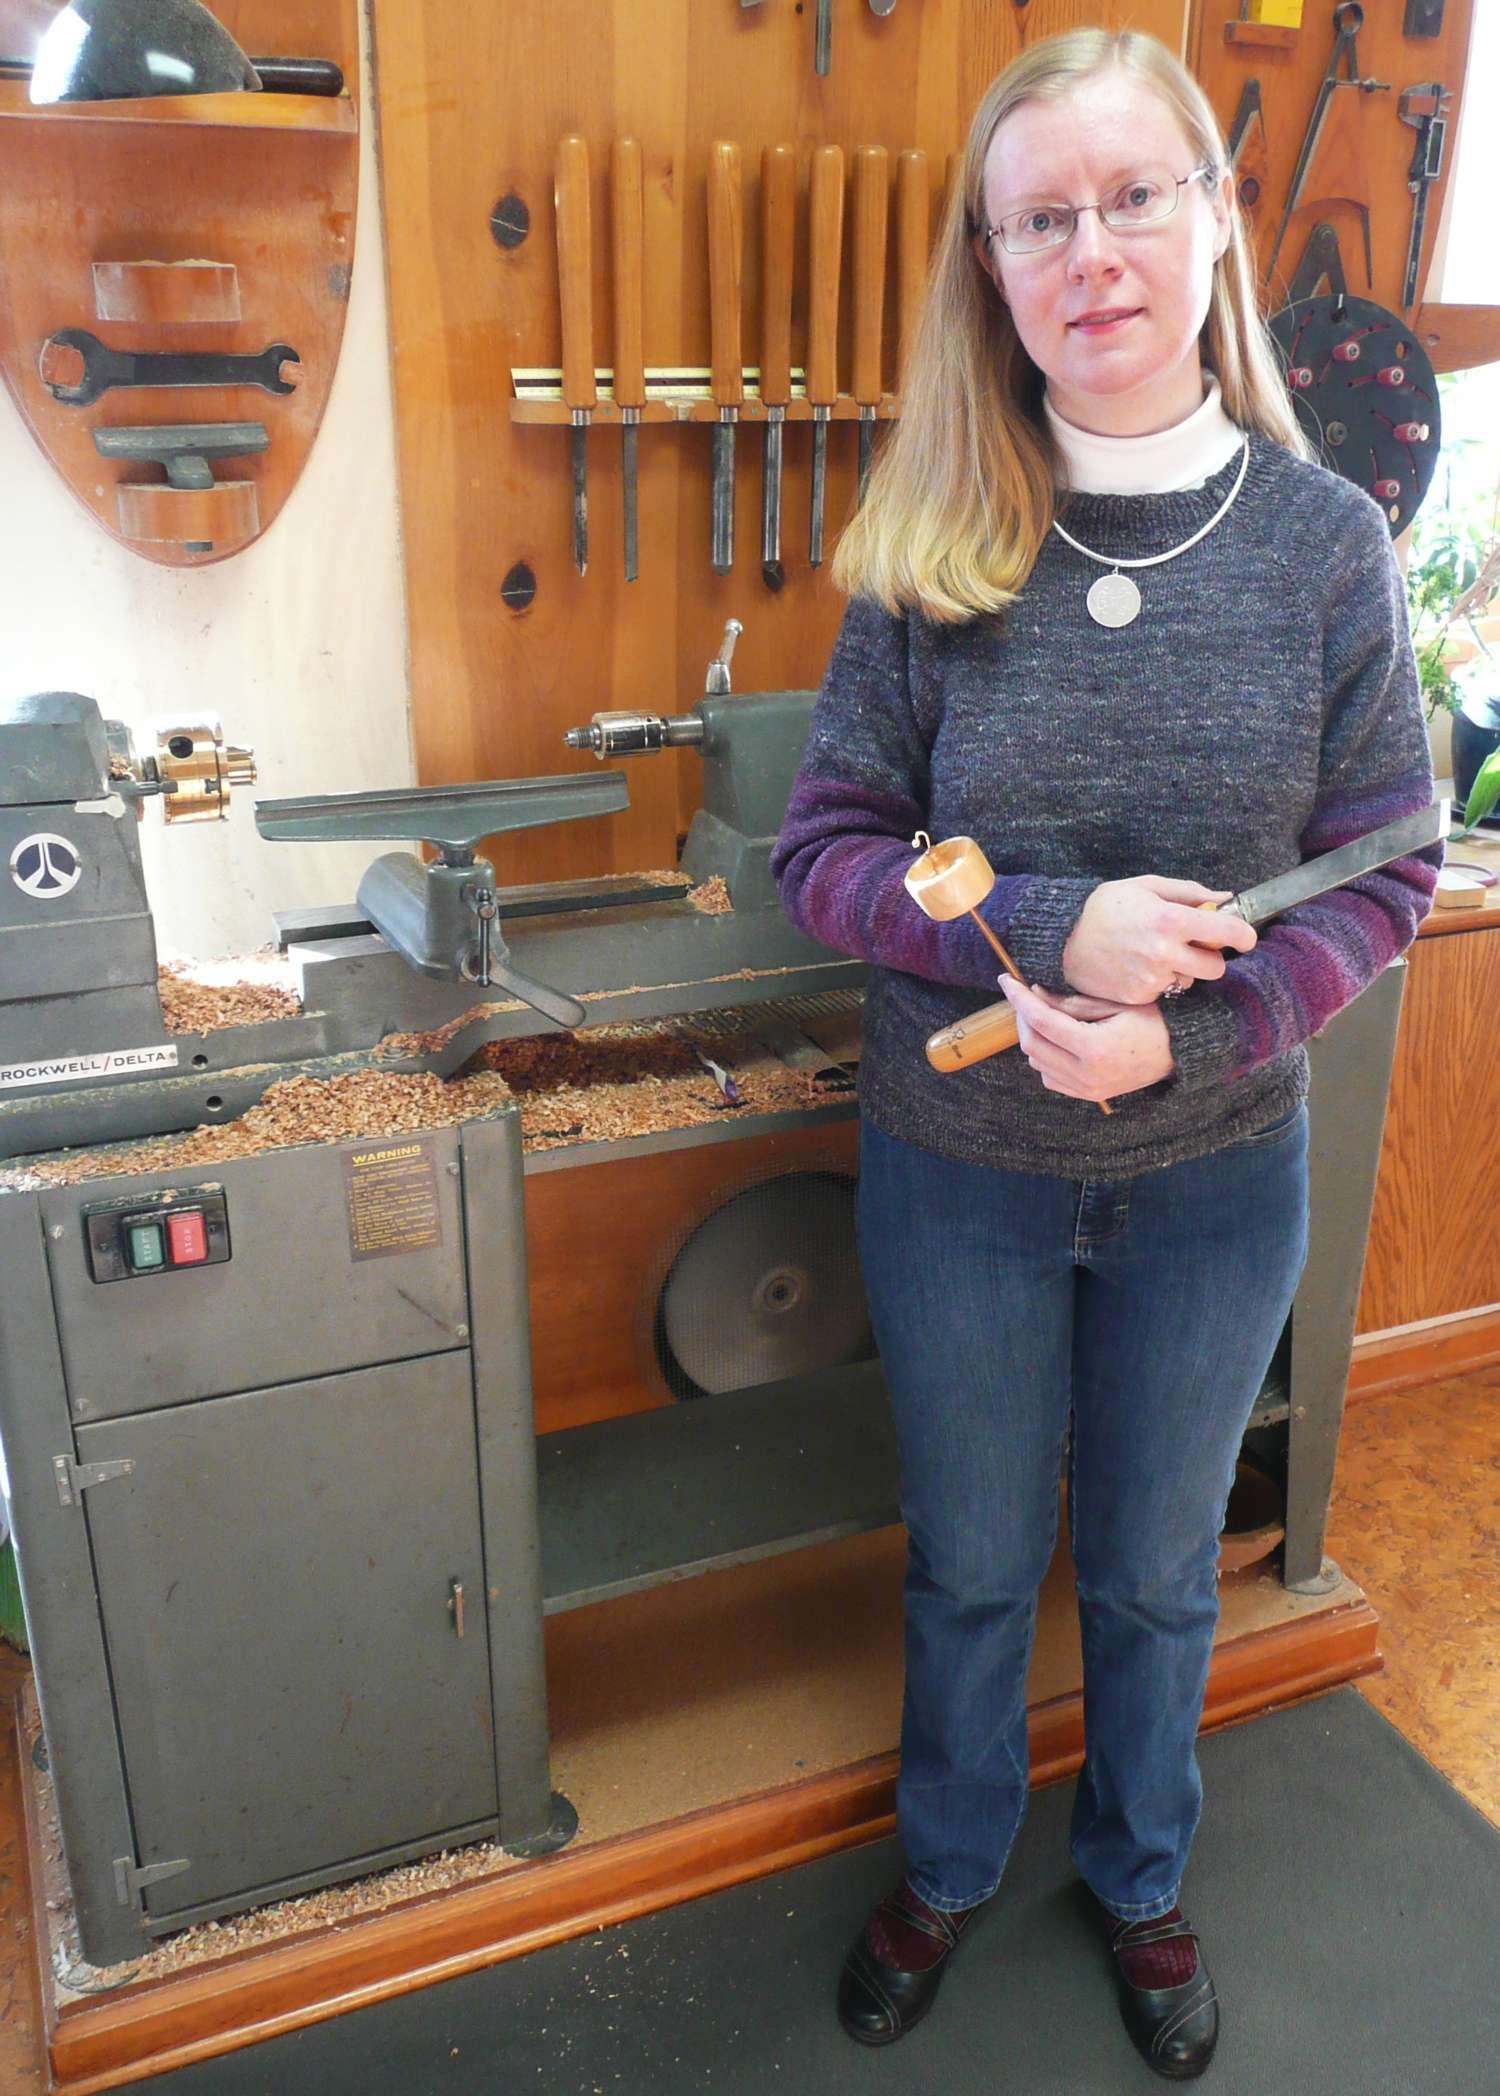 Cynthia D. Haney in front of her lathe holding a top whorl drop spindle that she made with the skew chisel.  Sweater hand knit from yarn entirely spindle spun and plied by her on her own hand turned spindles.